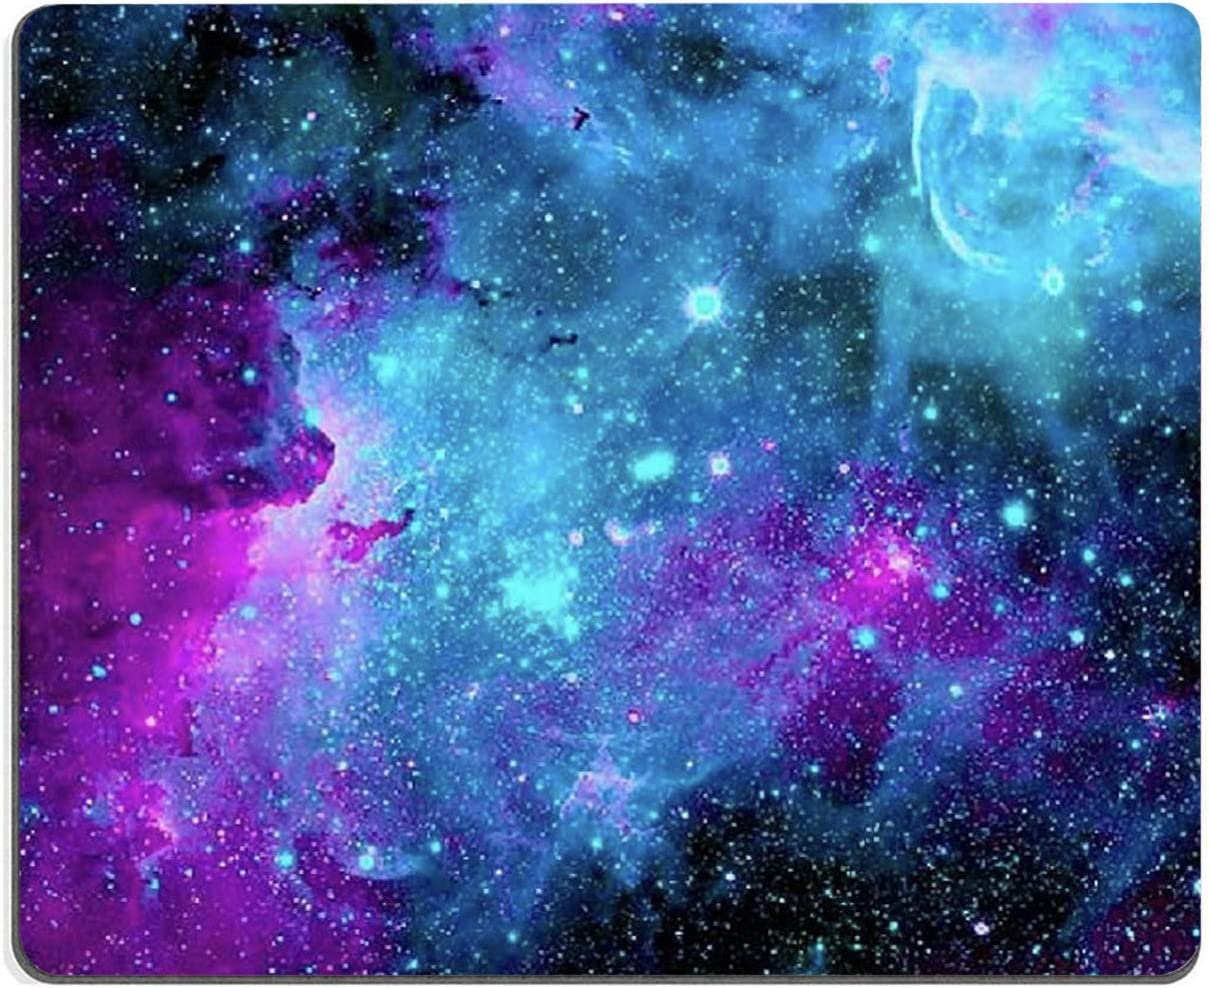 """Gaming Mouse Pad,Blue Purple Galaxy Nebula Universe Space Mouse Pad Non-Slip Rubber Base Mouse Pads for Computers Laptop Office, 9.5""""x7.9""""x0.12"""" Inch(240mm x 200mm x 3mm)"""